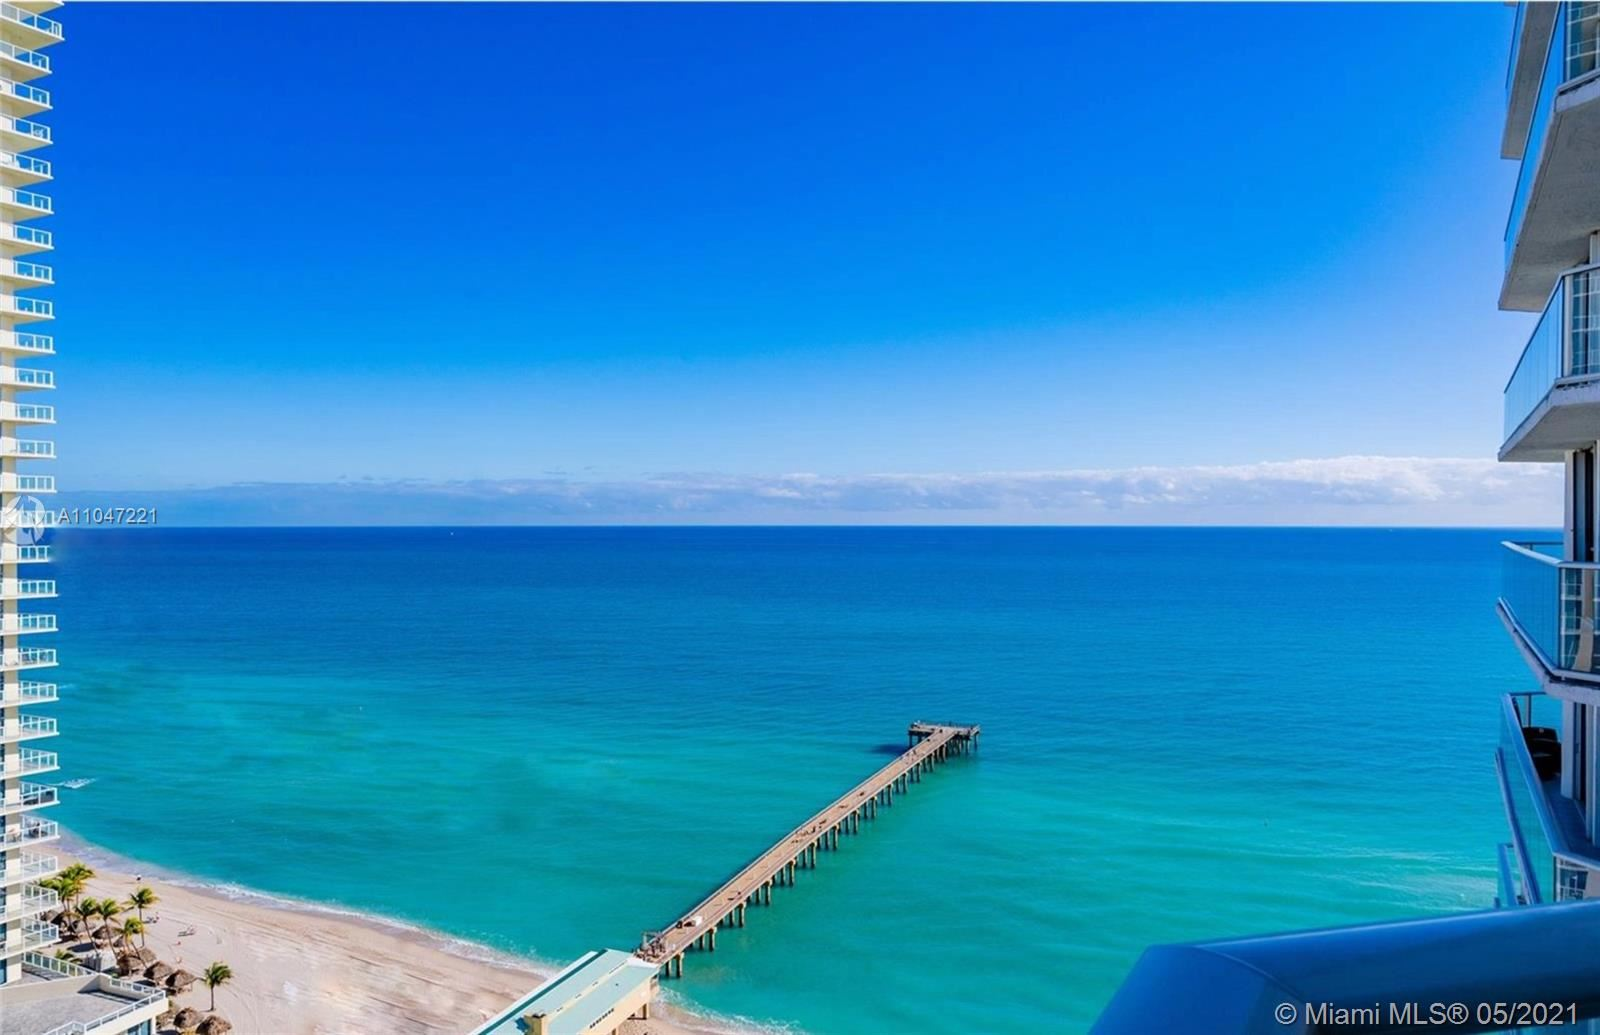 16485 Collins Ave #2435, Sunny Isles, FL 33160 - #: A11047221